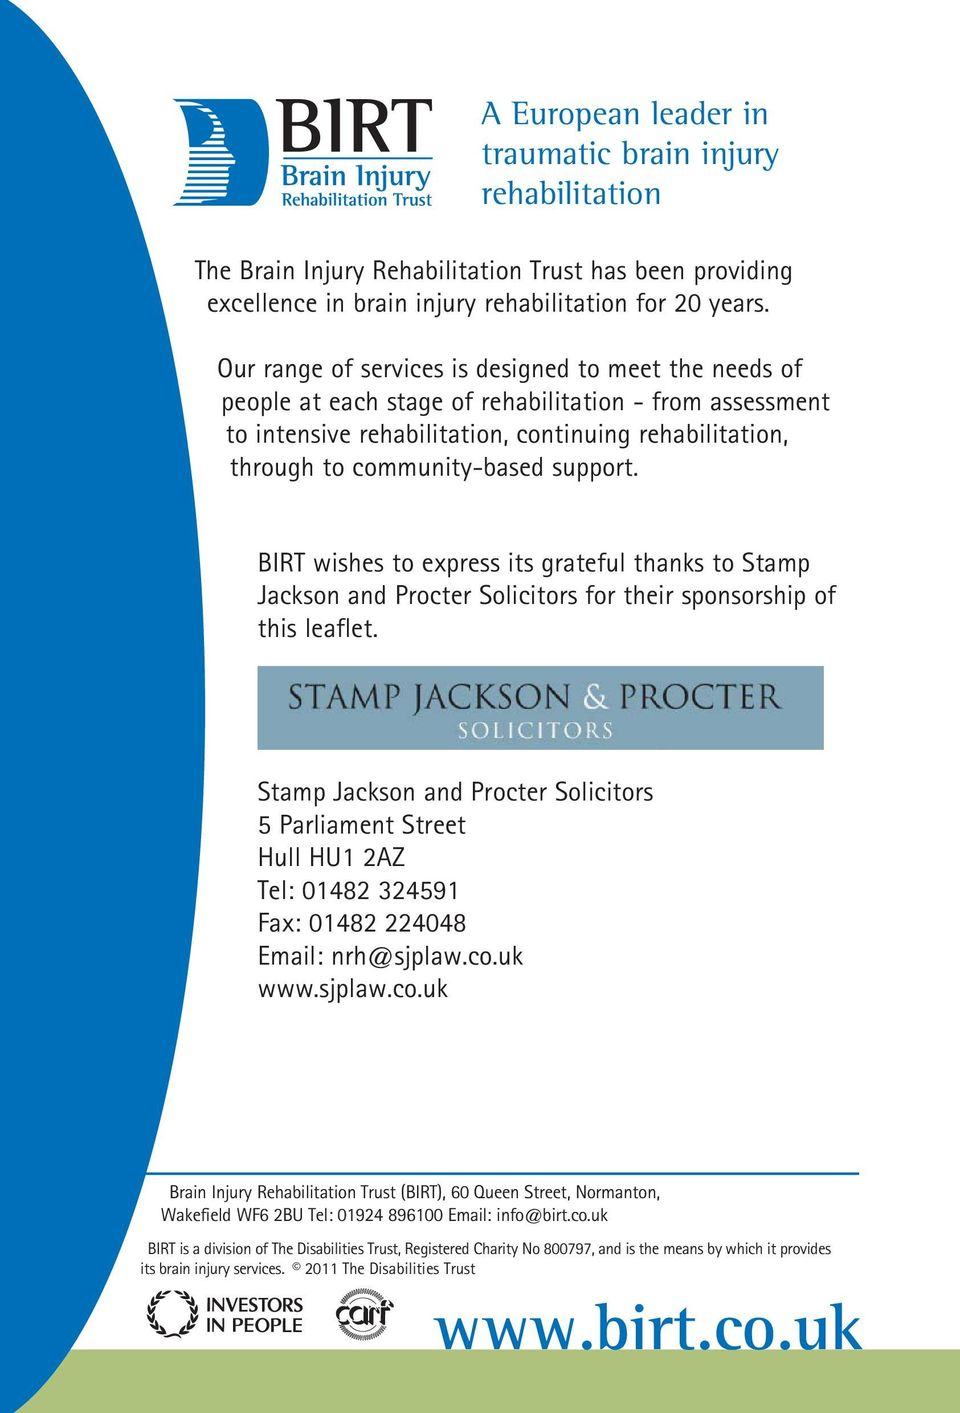 support. BIRT wishes to express its grateful thanks to Stamp Jackson and Procter Solicitors for their sponsorship of this leaflet.